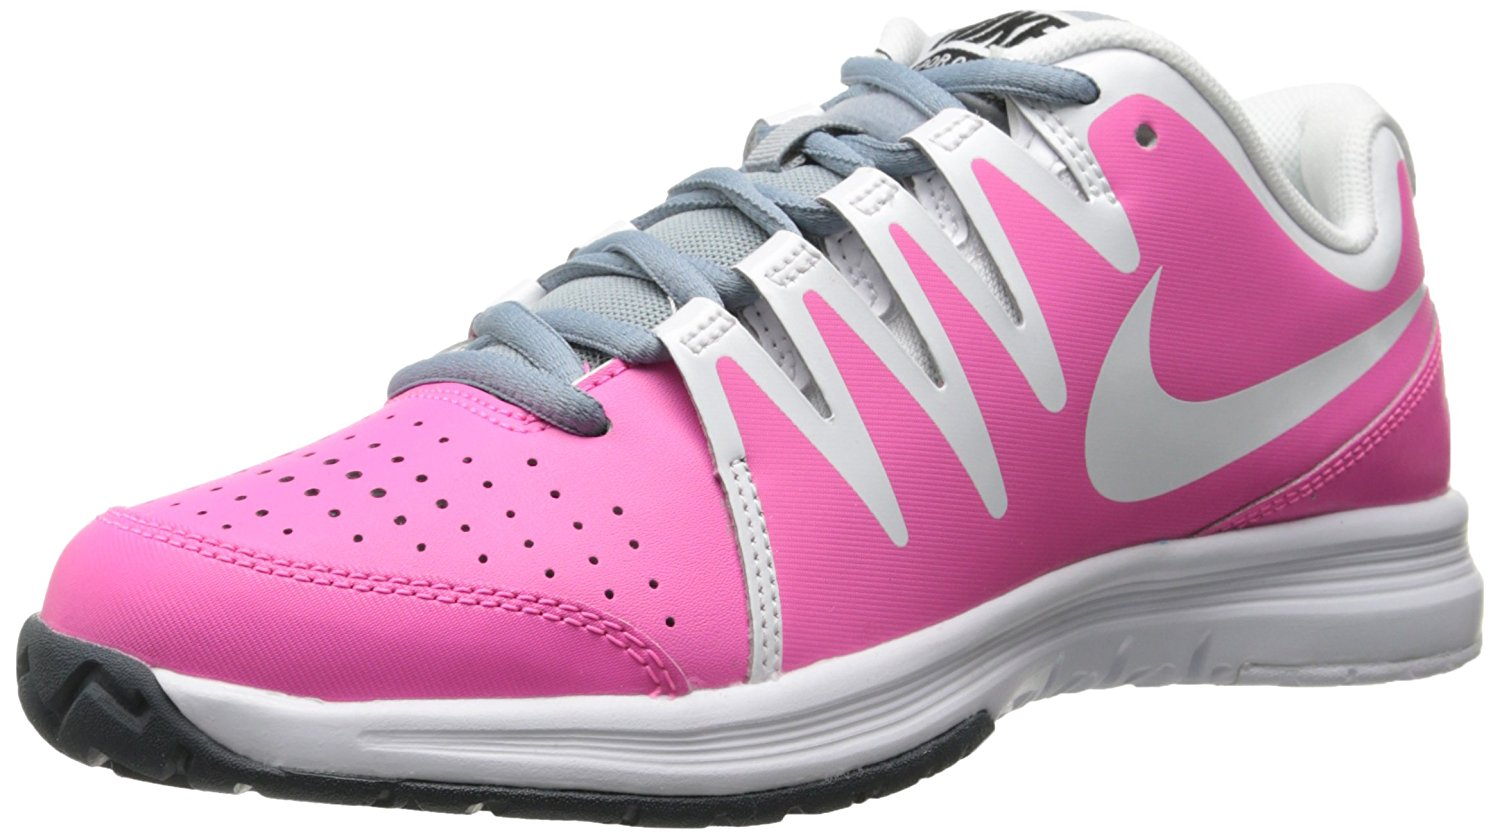 Buy NIKE Womens Vapor Court Tennis Shoes in Cheap Price on Alibaba.com 2c36c03ea